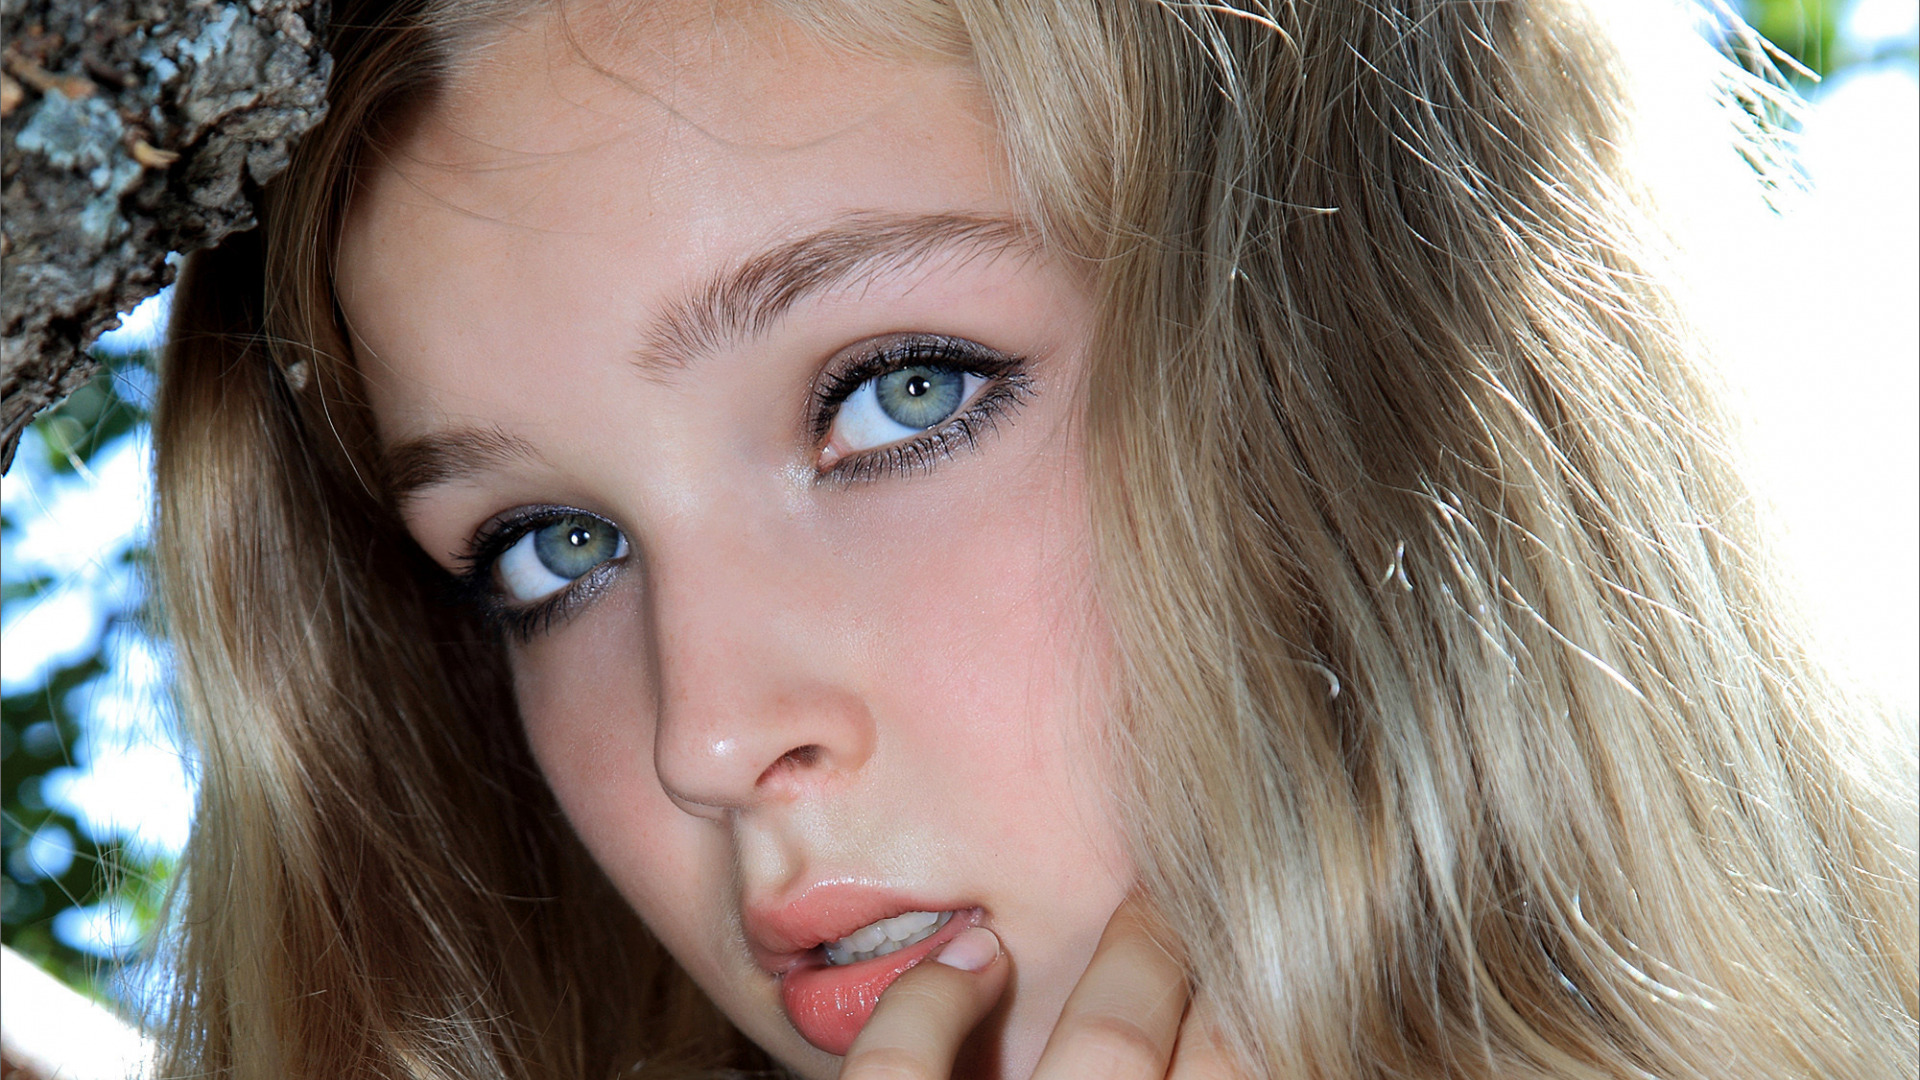 Close up side profile of pretty blonde teen by dina marie giangregorio